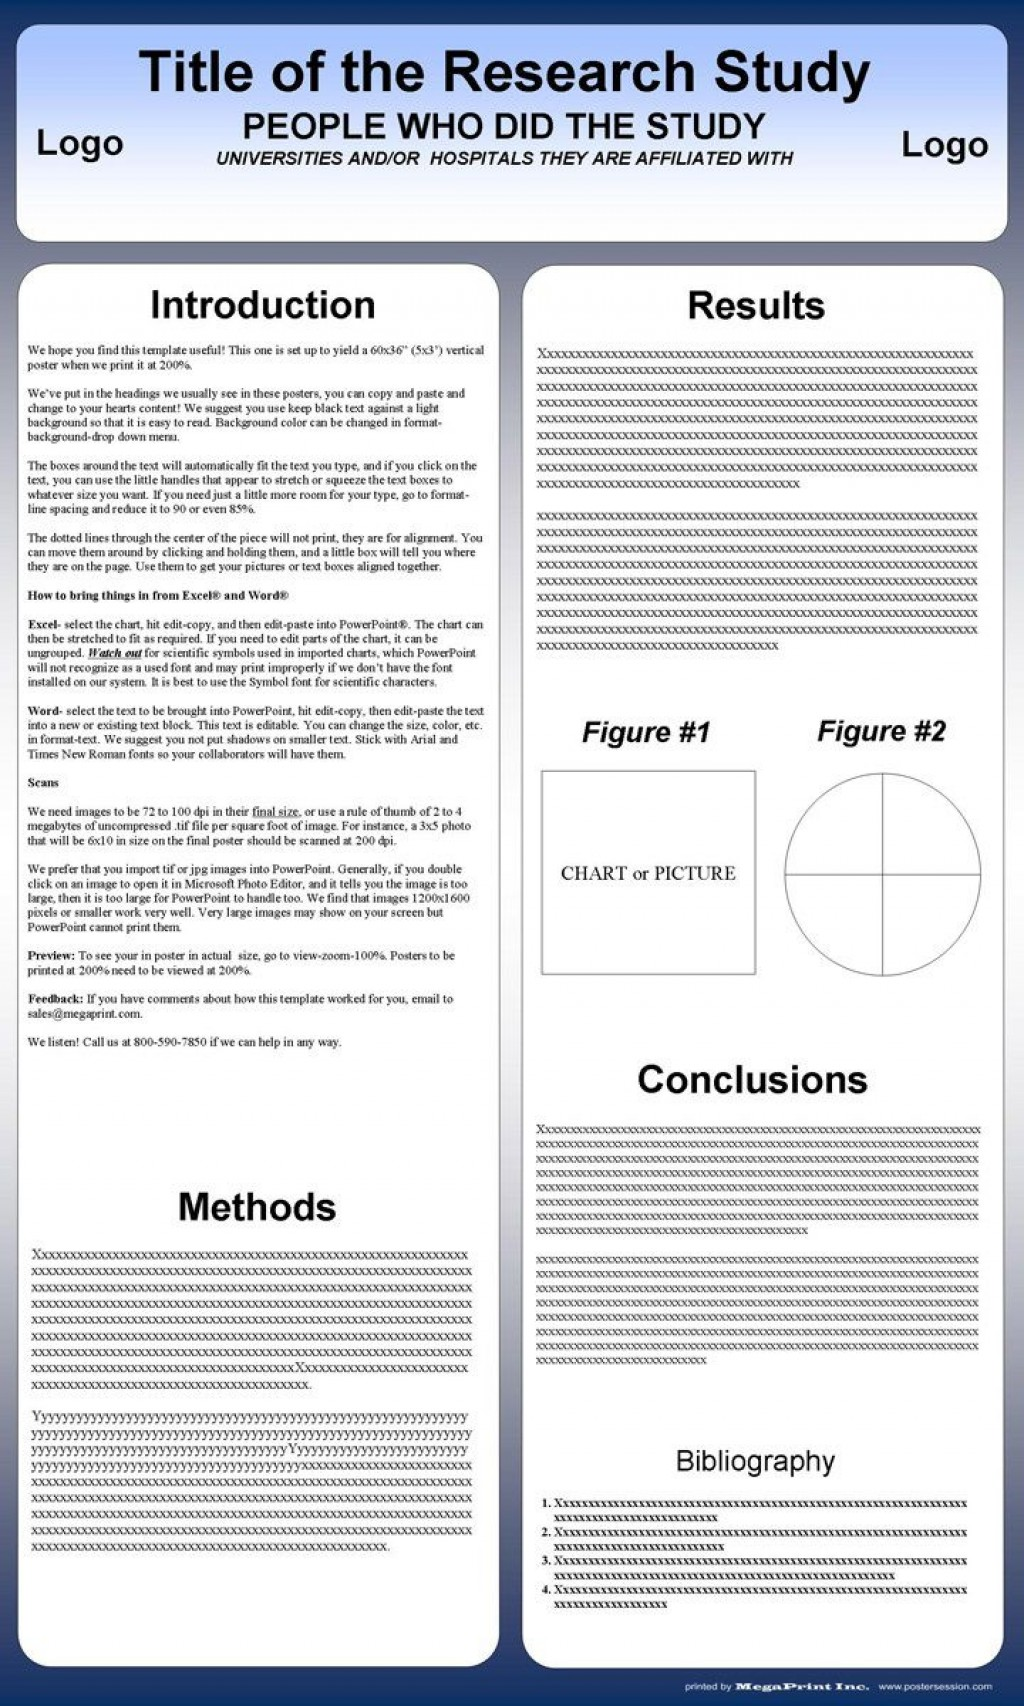 001 Stunning Scientific Poster Presentation Template Free Download Image Large